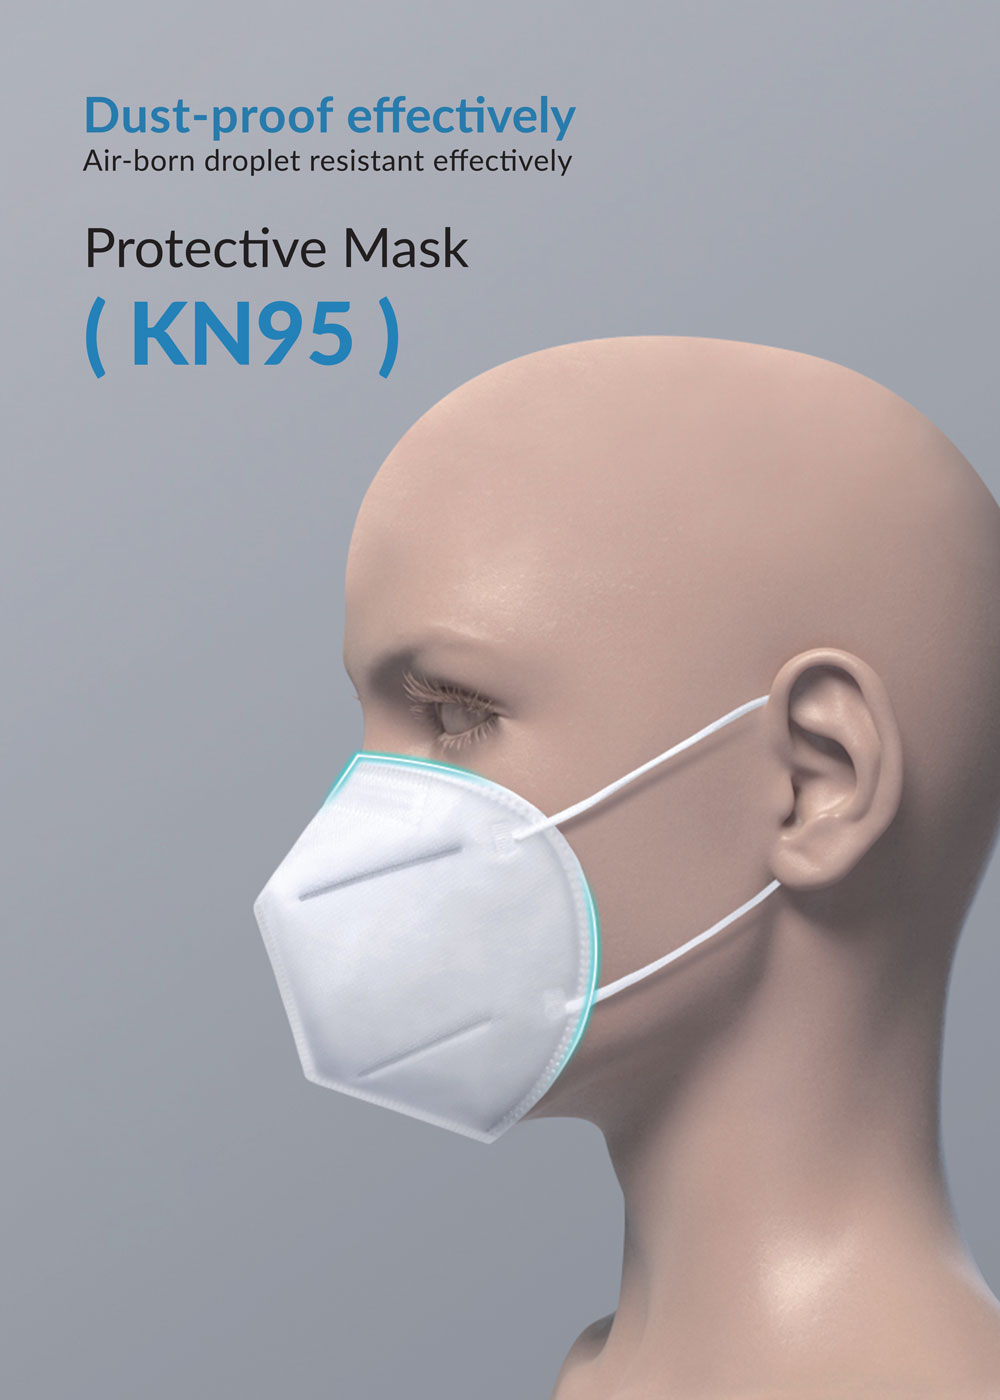 Protective Mask (KN95) from SJCAM